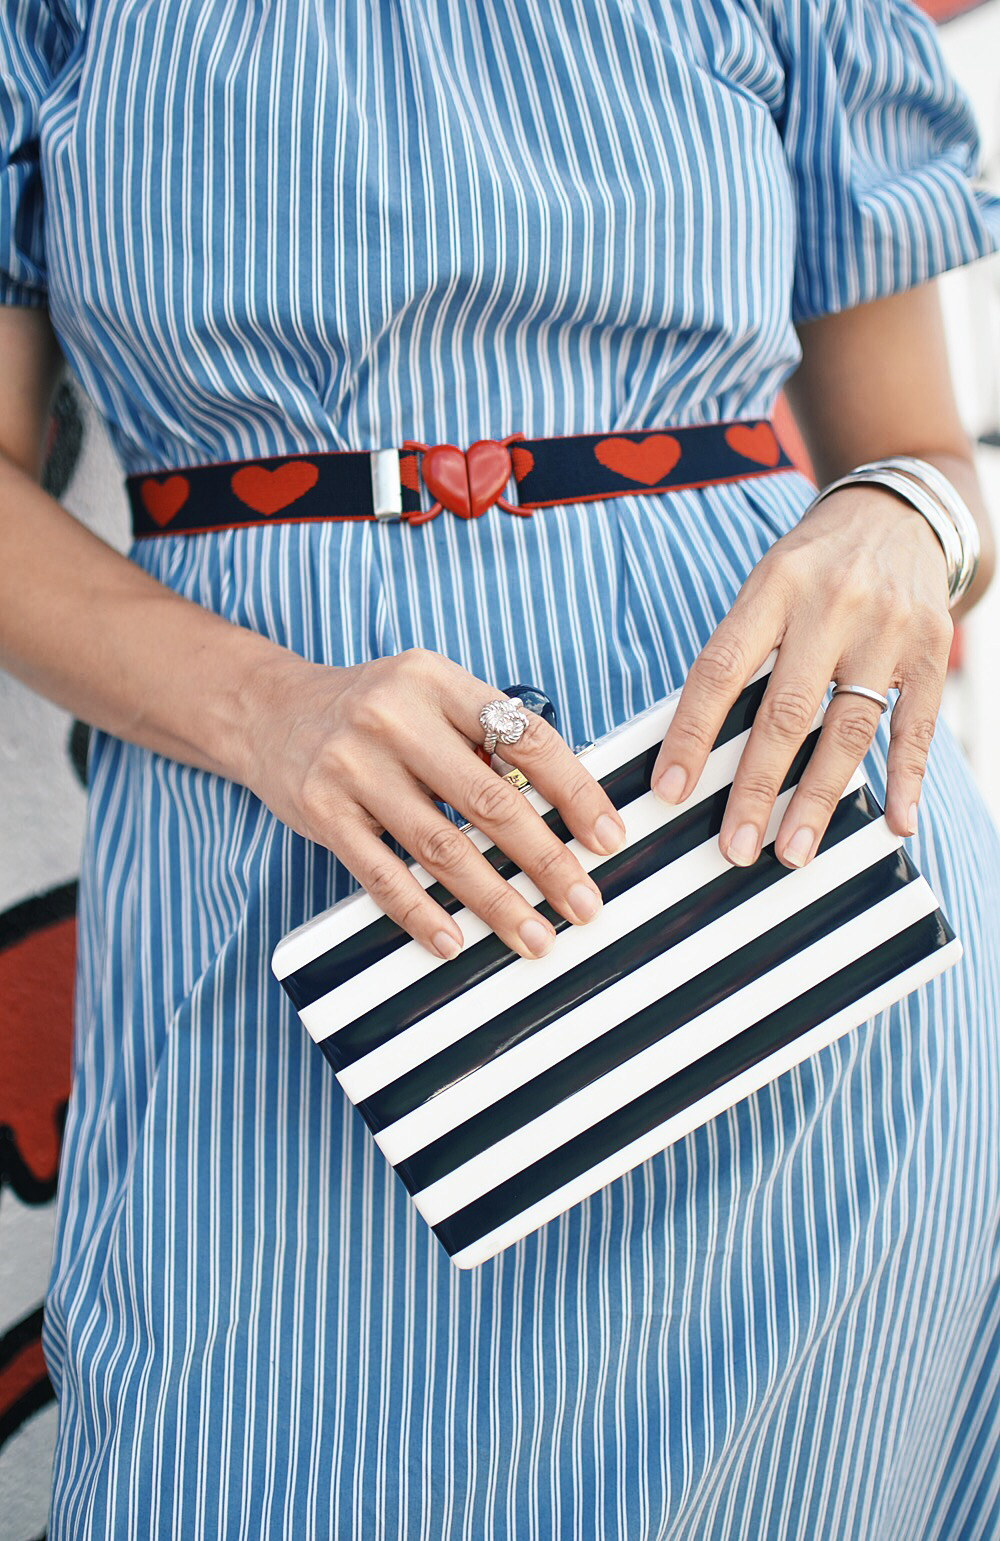 Striped bag street style